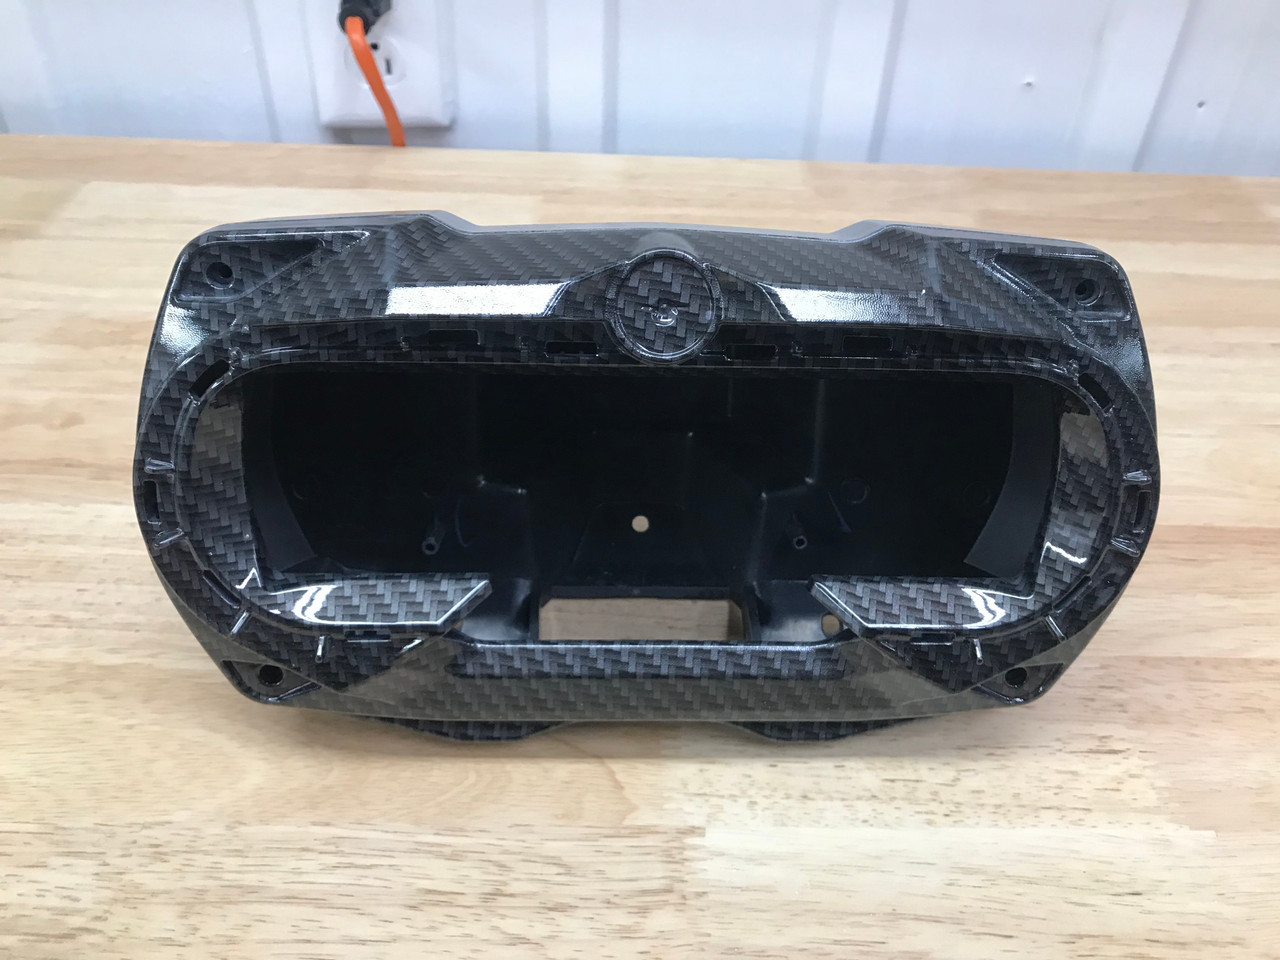 F3/F3S Dashboard 2020 - Carbon Fibre fits 2019-2020 (2 pieces)